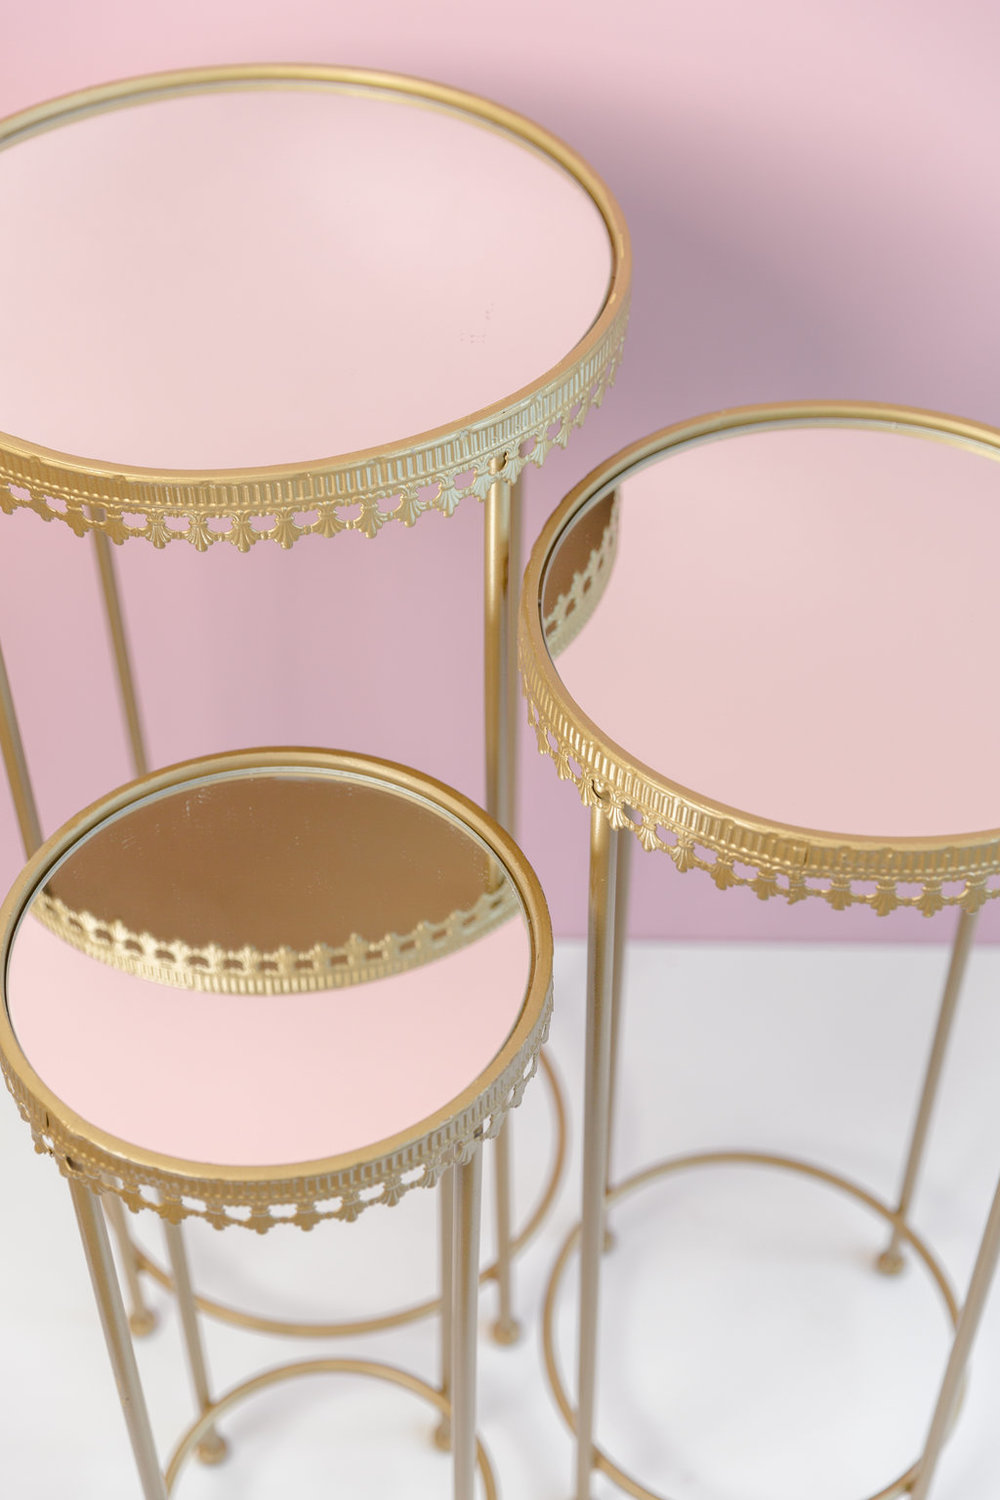 Gold Mirror Tables  $55 per set of three (2 sets available)